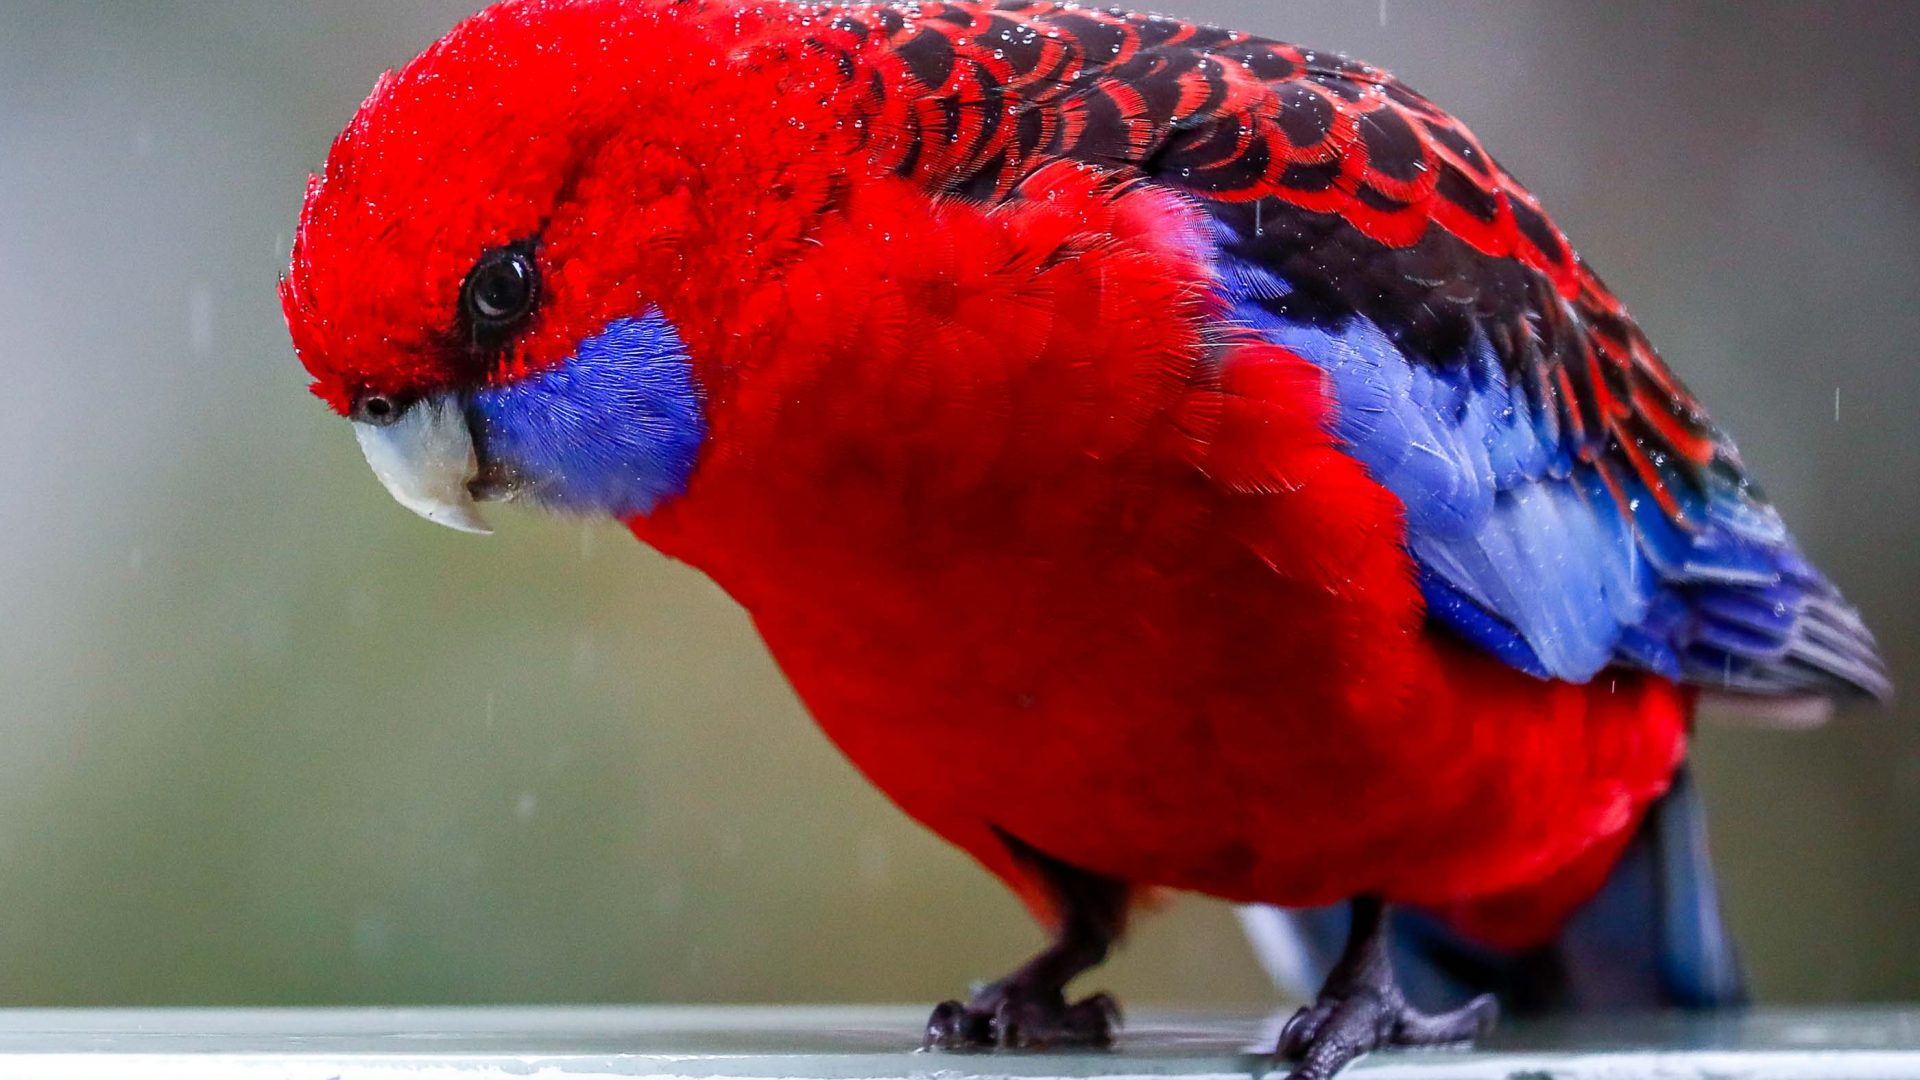 A red and blue bird.